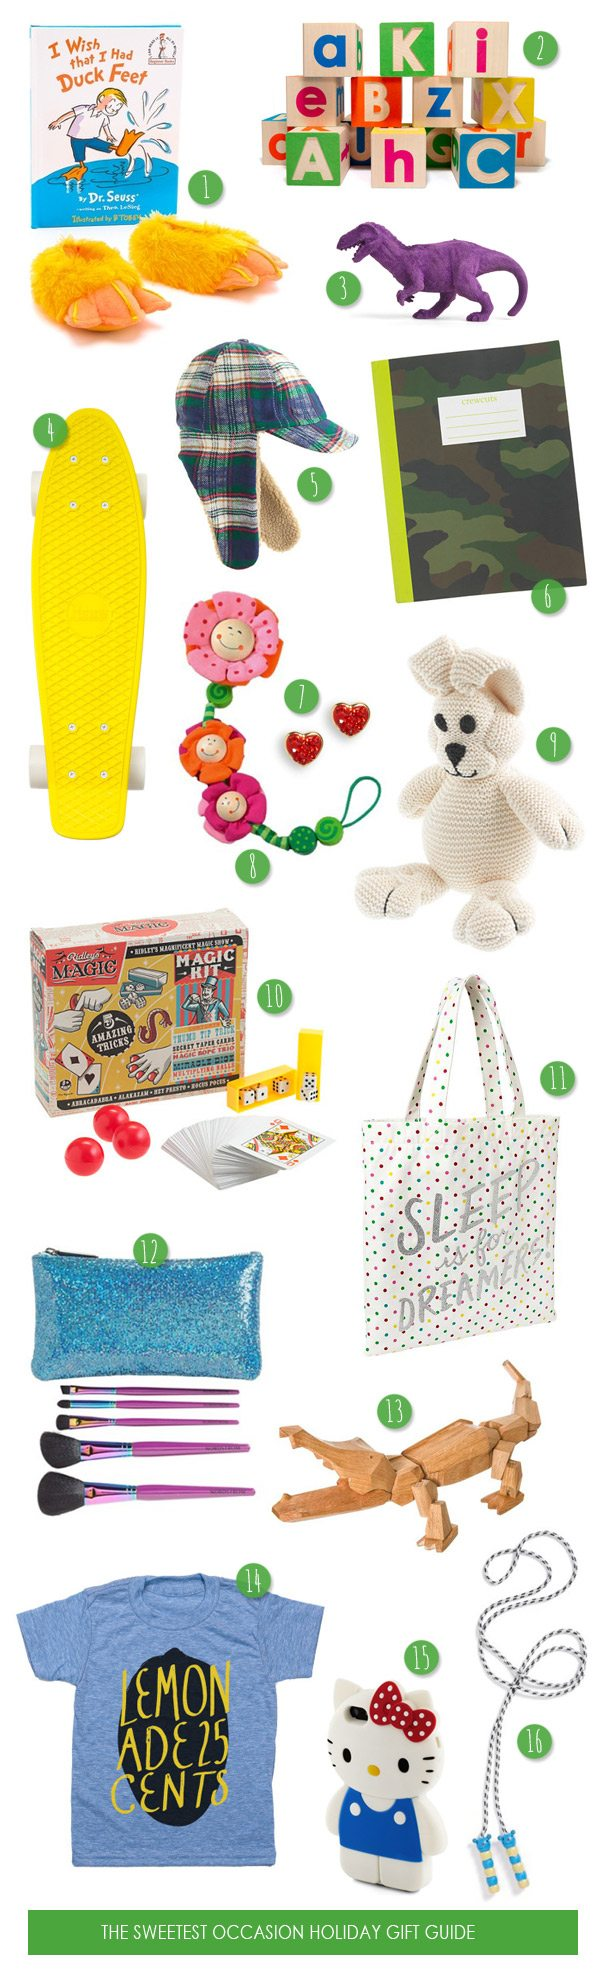 The Gift Guide - Gifts for Kids and Teens